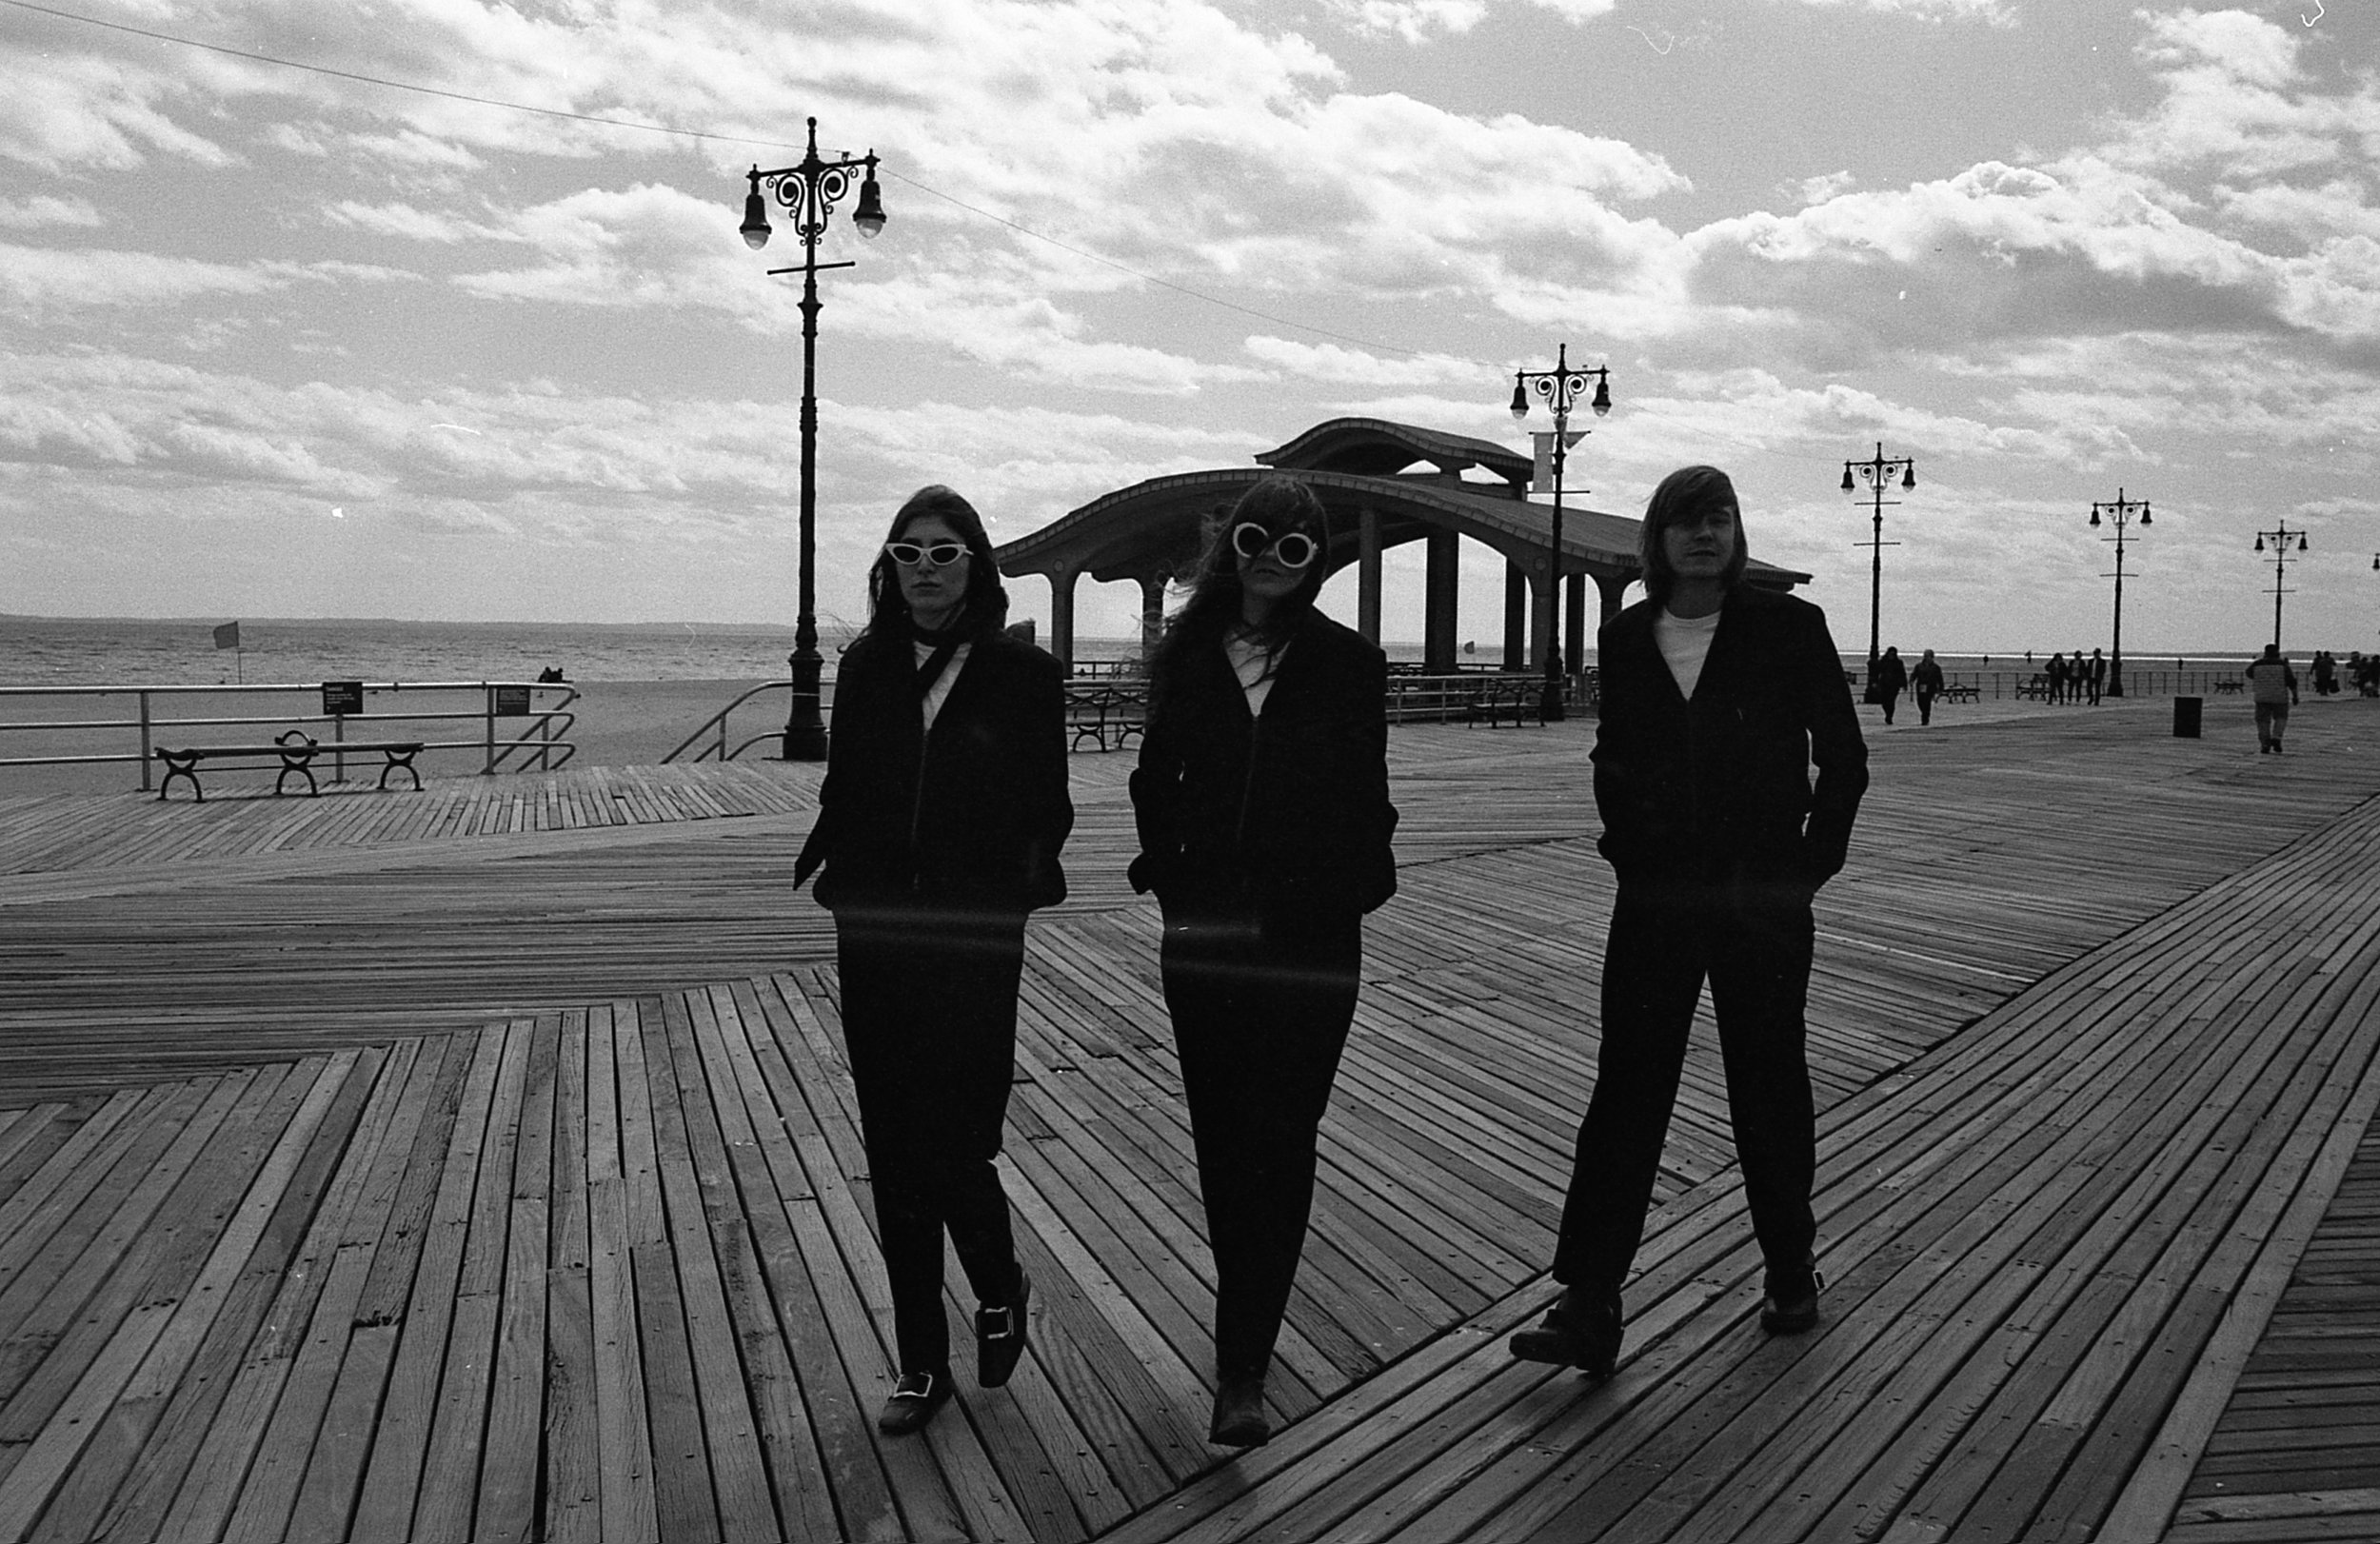 Moonwalks in Coney Island, April 2019